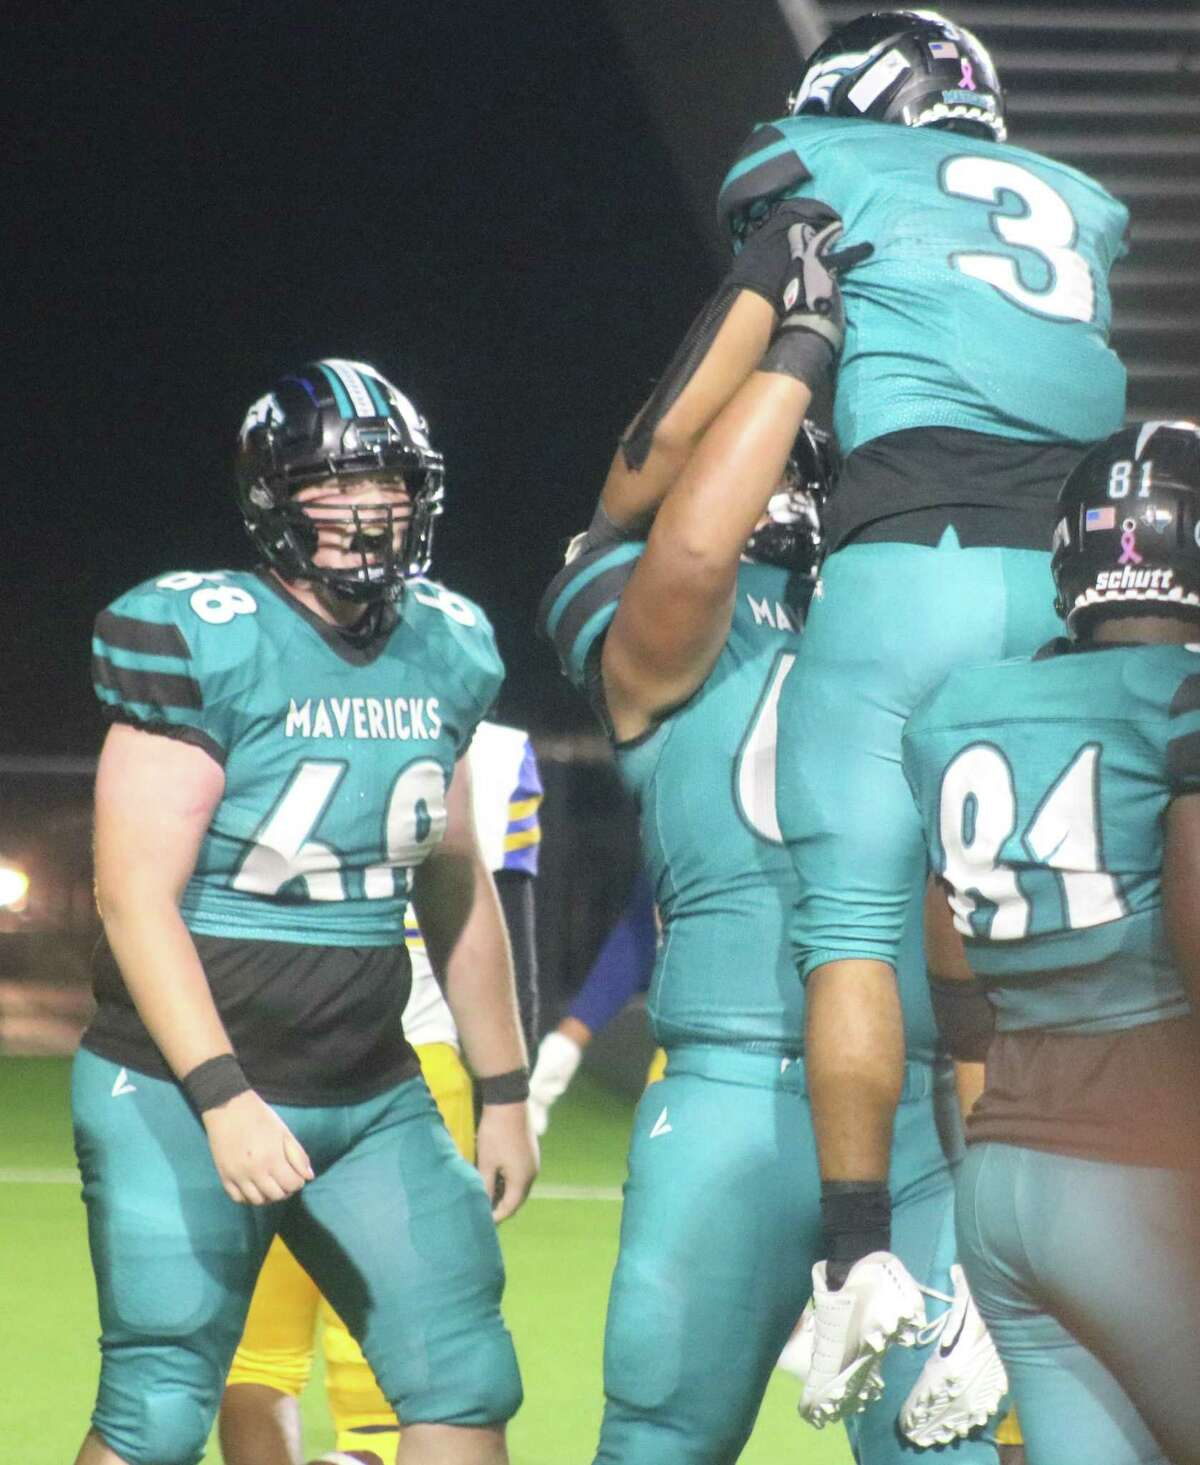 Memorial's Christian Vega leaps into the arms of a teammate after scoring the last of the team's come-from-behind fourth quarter touchdowns. Looking on is lineman Jerry Barr (68).